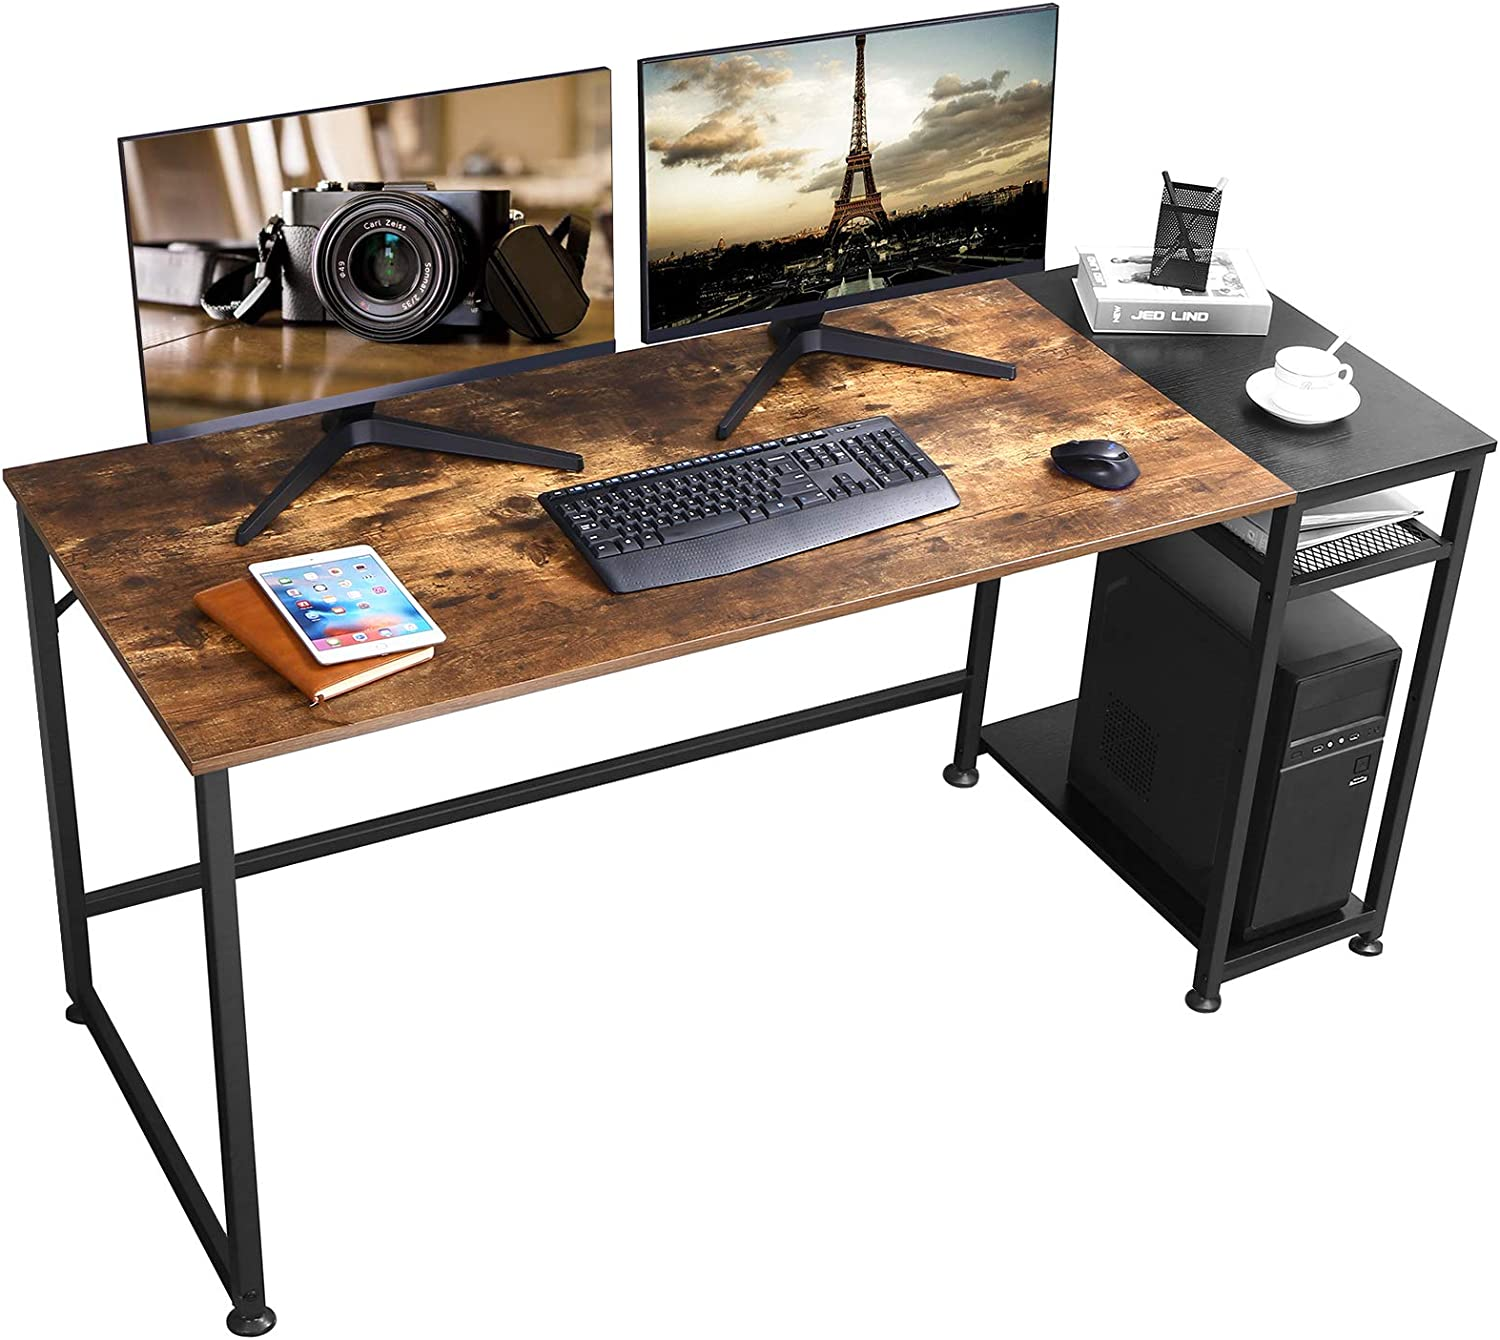 BEWISHOME Computer Desks for Home Office Inch Desk Study Max Max 80% OFF 62% OFF 63 Long